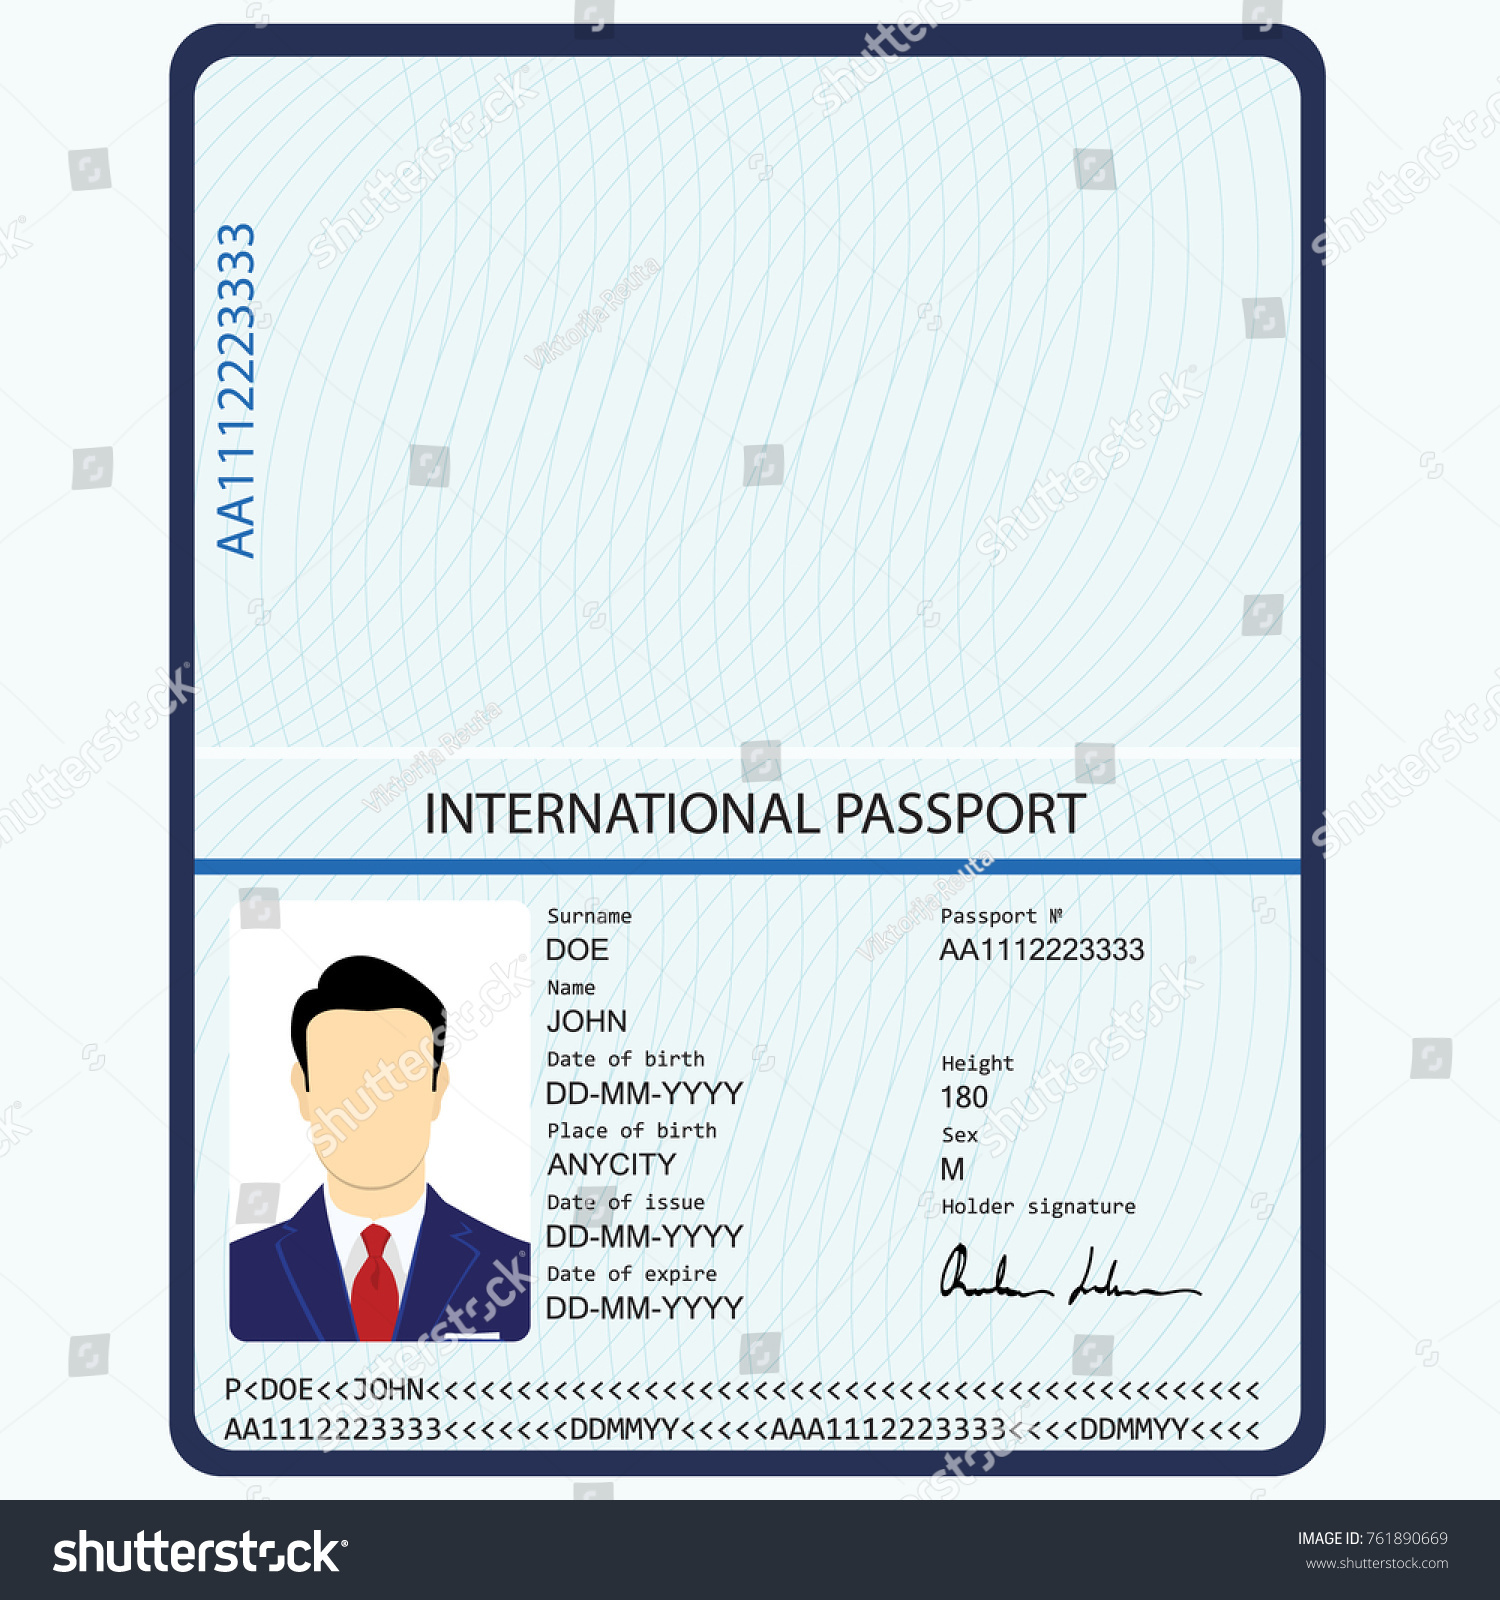 How can I find the passport data